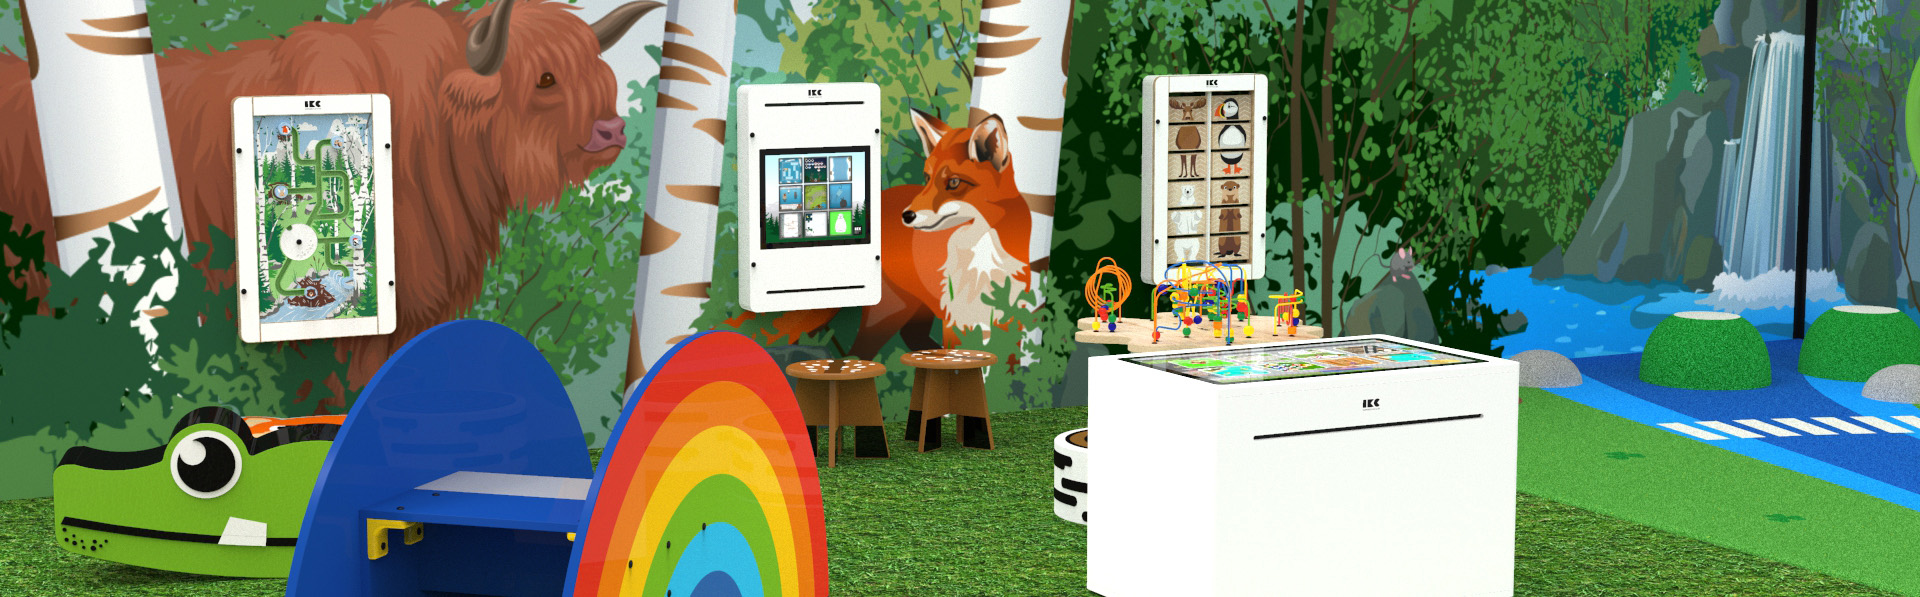 Interactive play systems for children in an IKC play corner